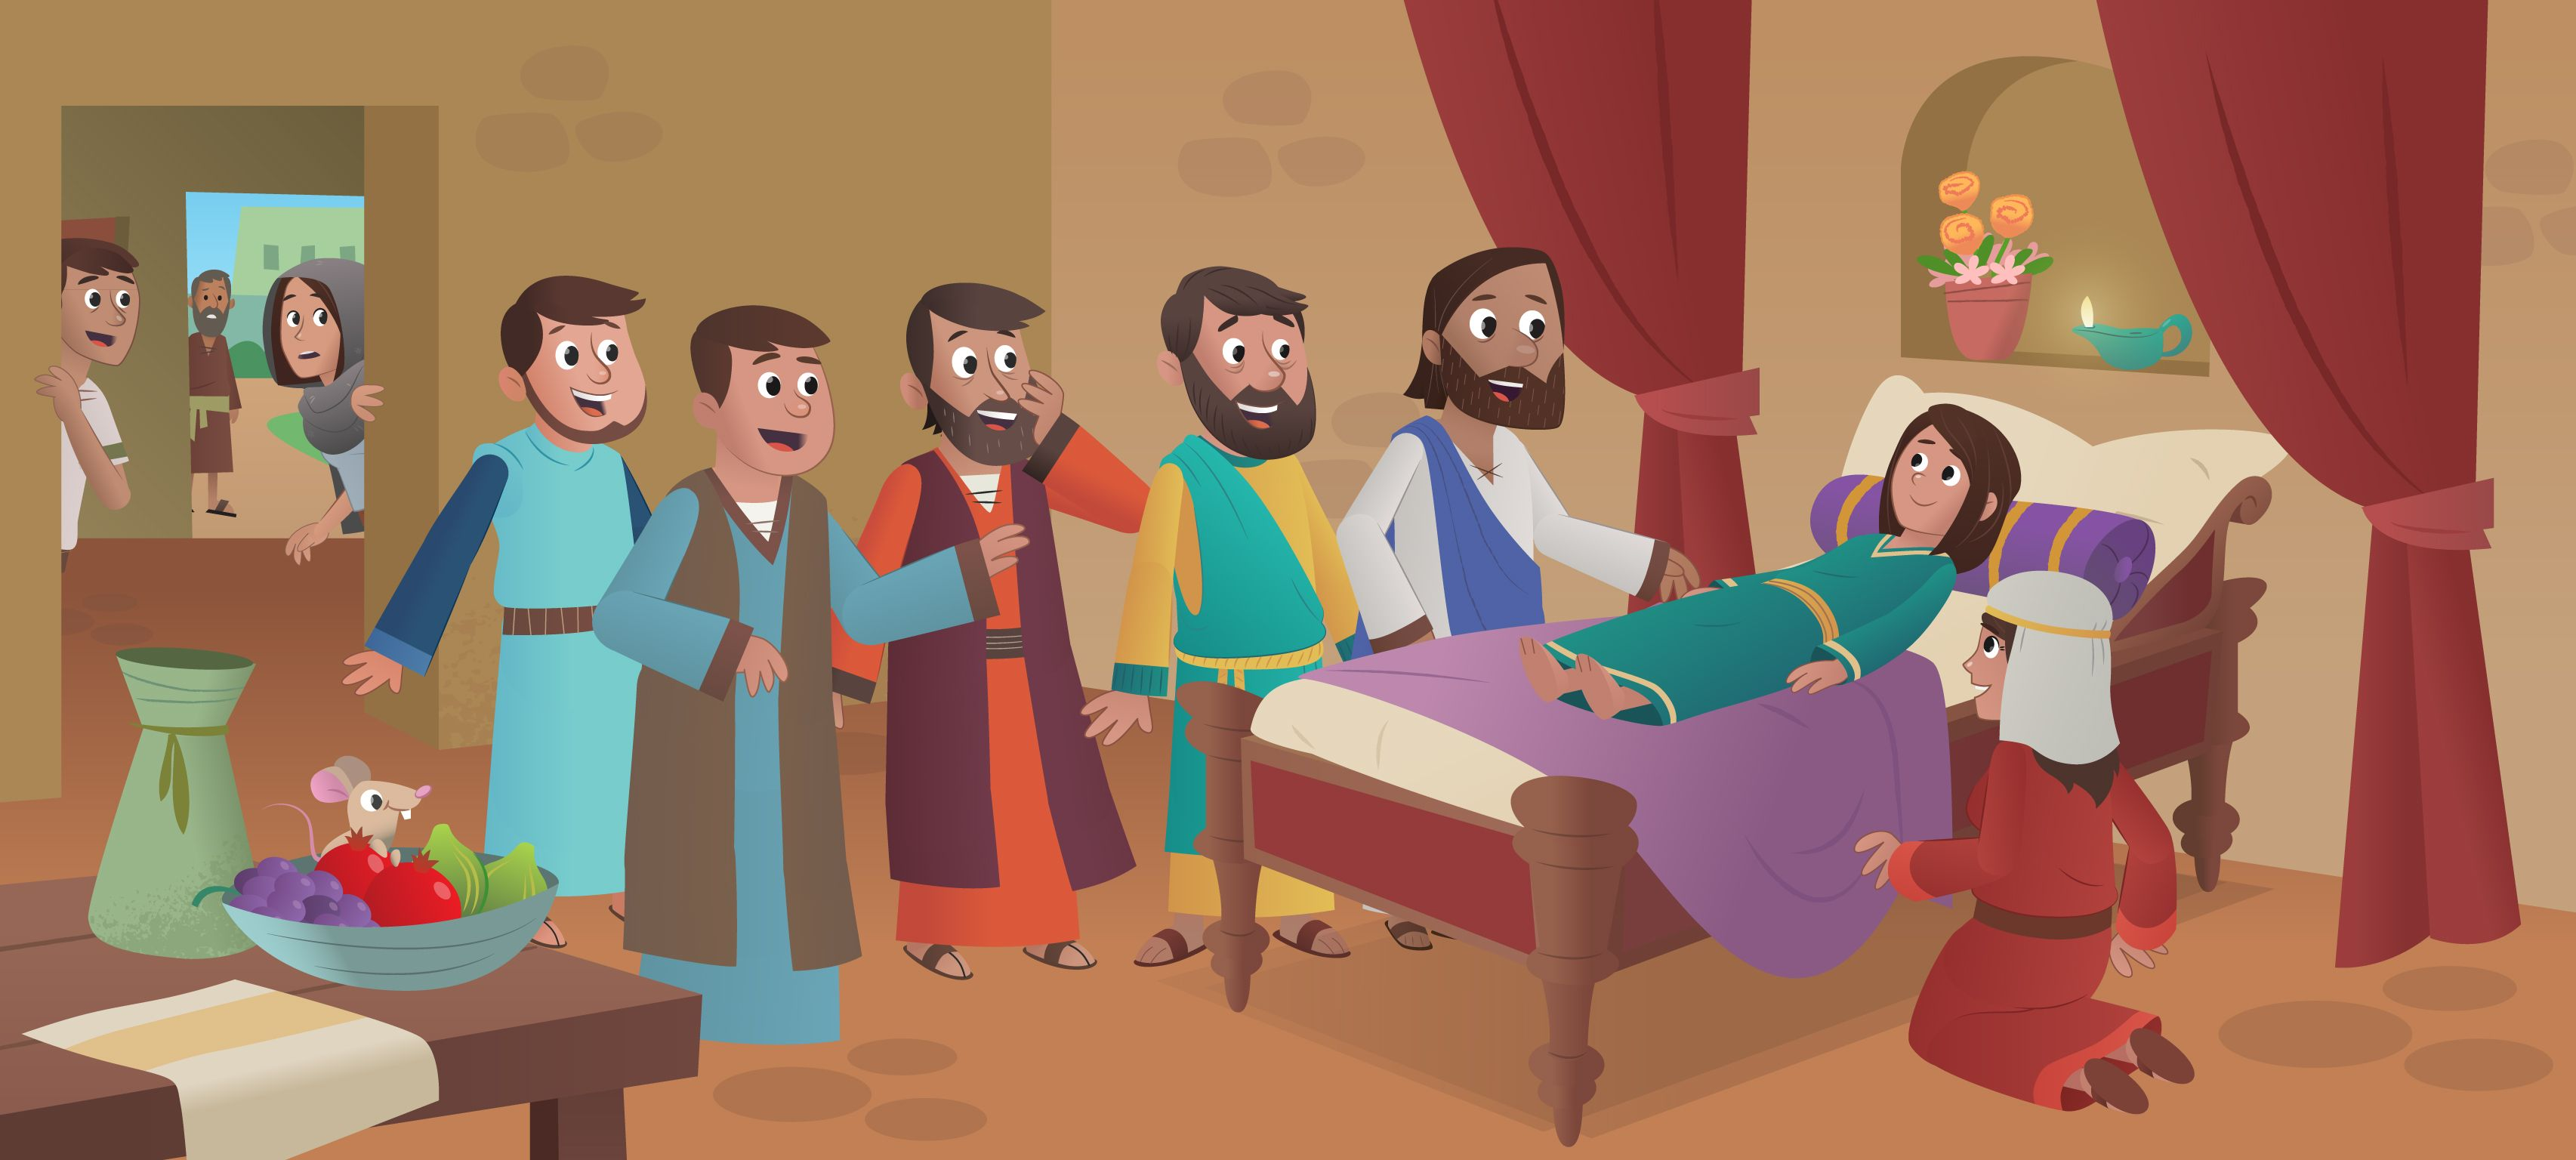 """In the latest story from the Bible App for Kids, """"Time to"""